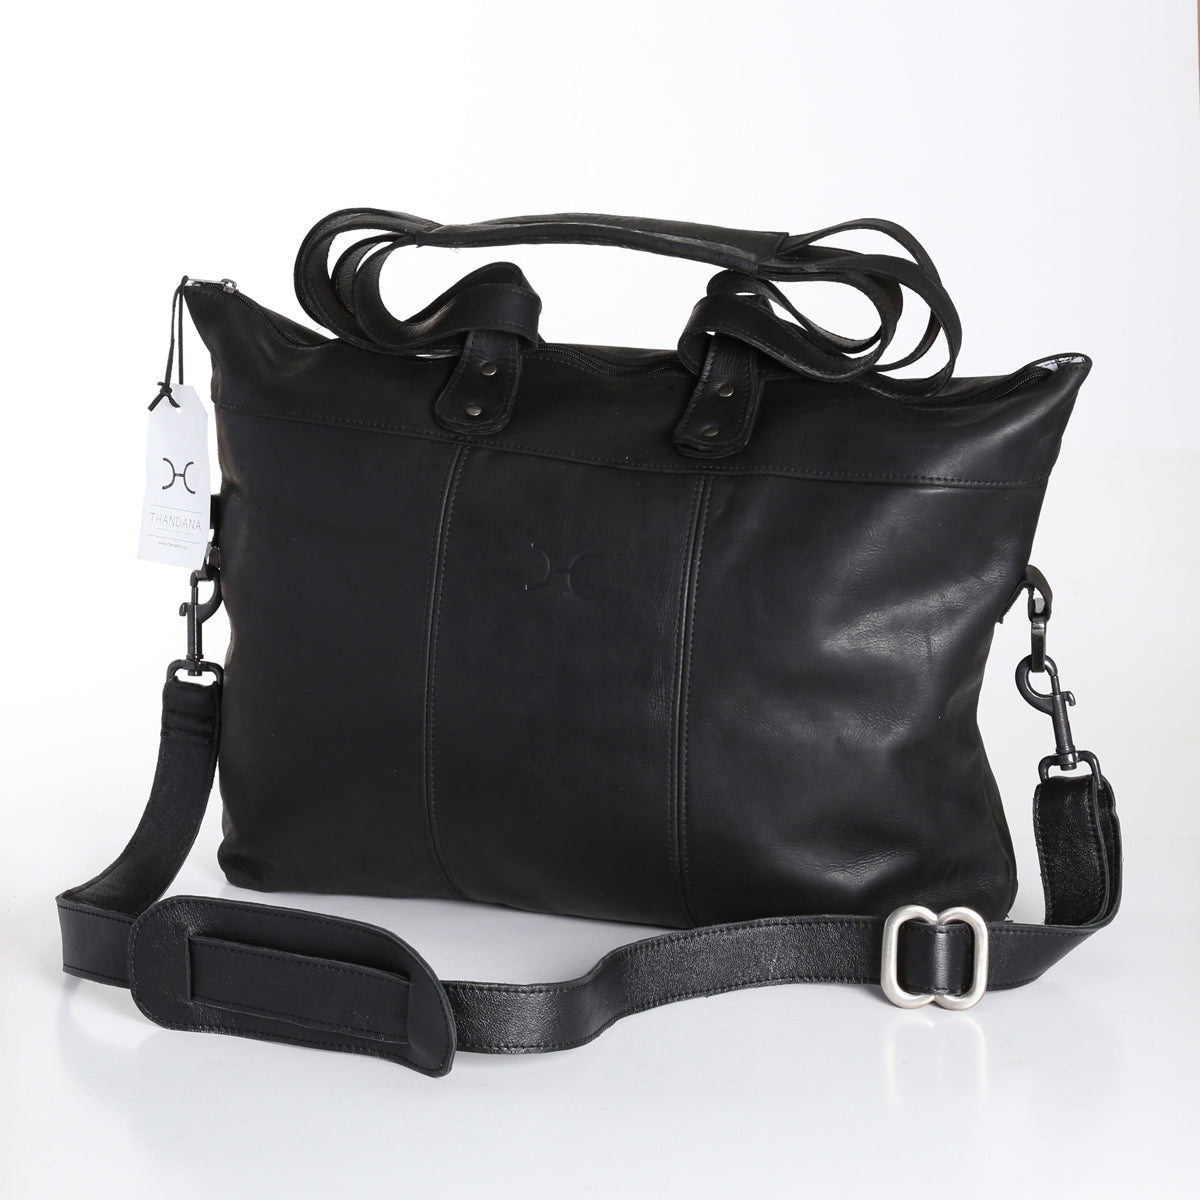 Thandana Ladies Cabin Bag - Black - Zufrique Boutique